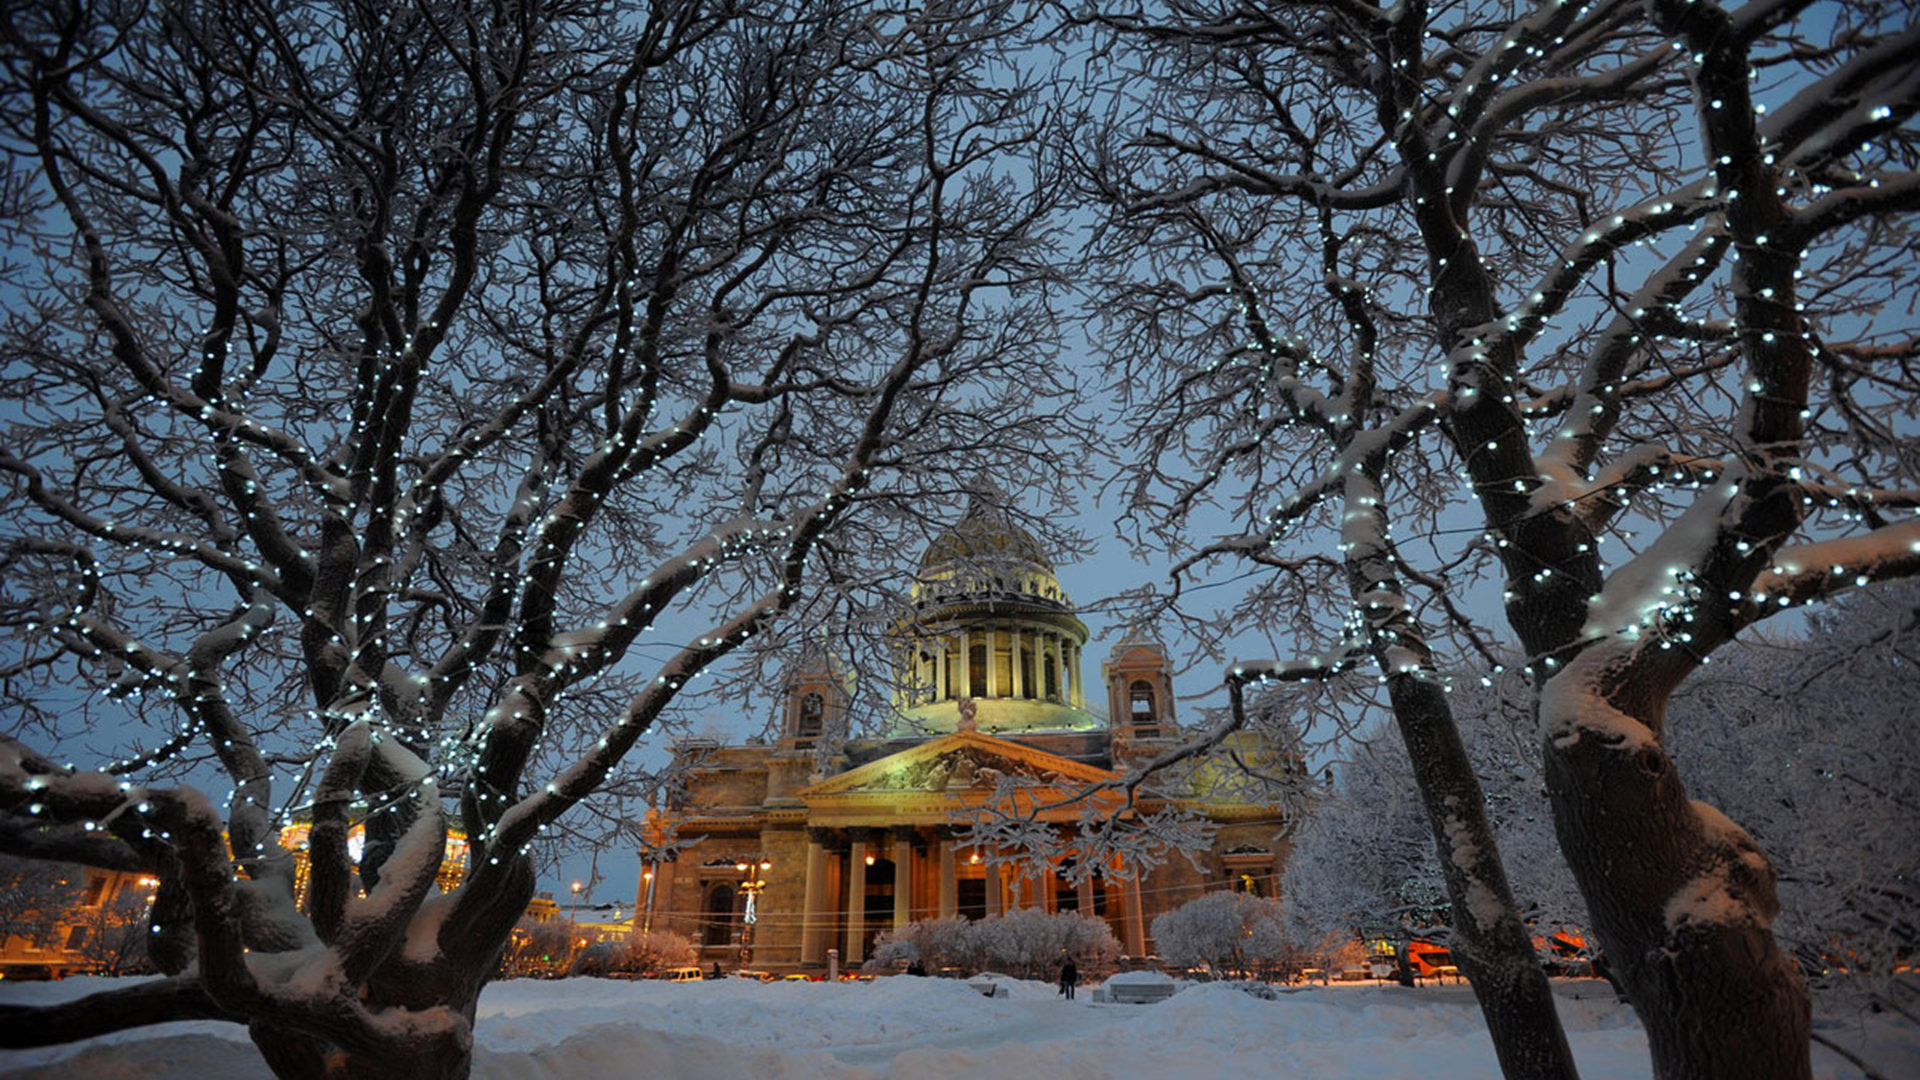 Wallpaper Amazing Cars Wallpaper Winter Church Trees Snow St Petersburg Peterhof